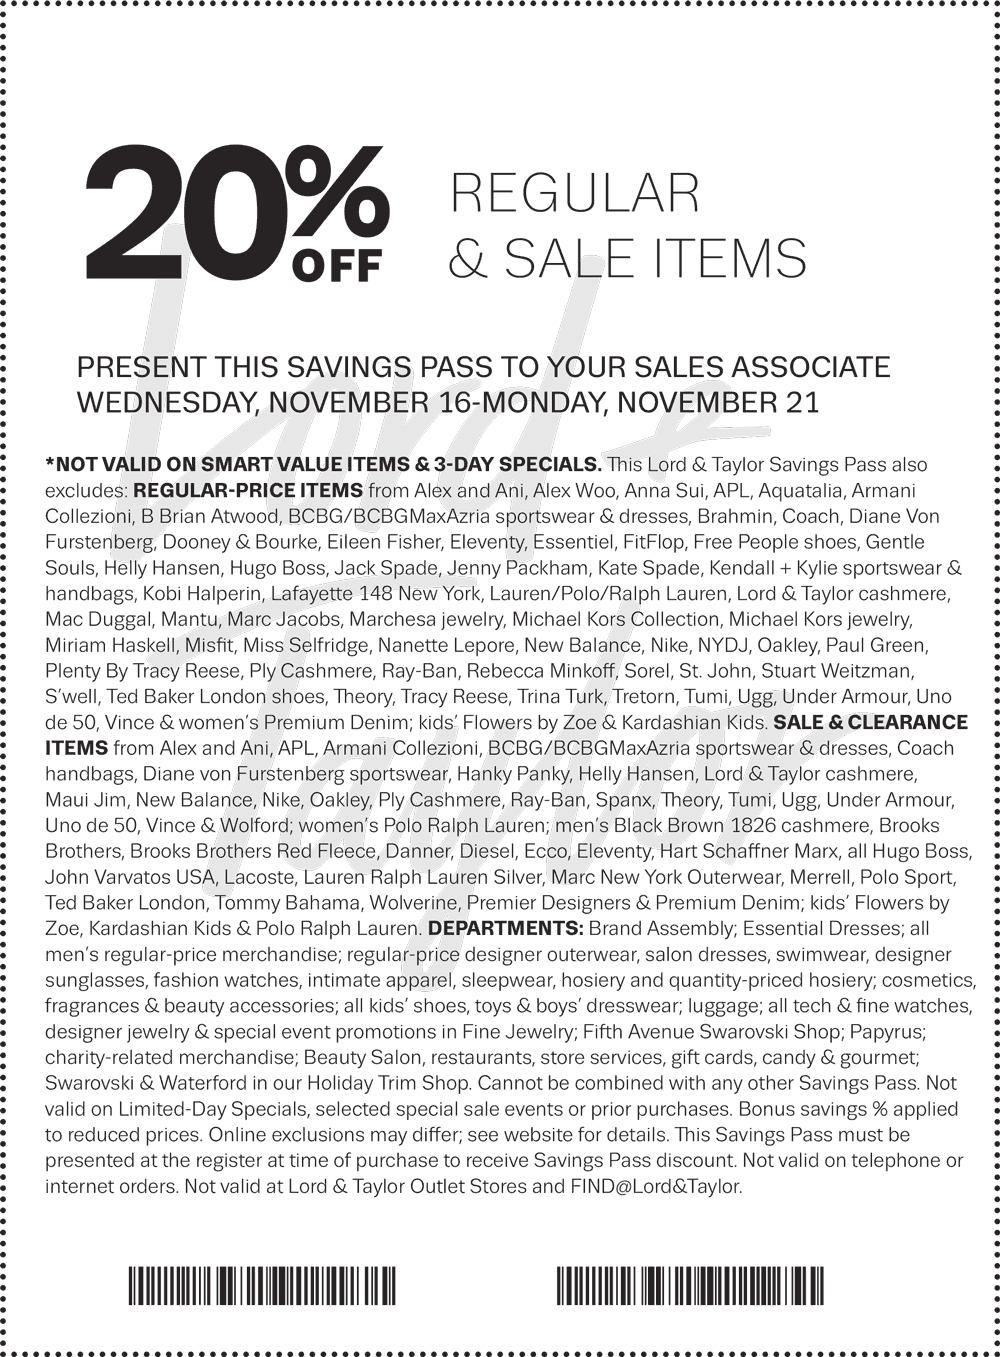 Lord&Taylor.com Promo Coupon 20% off regular & sale items at Lord & Taylor